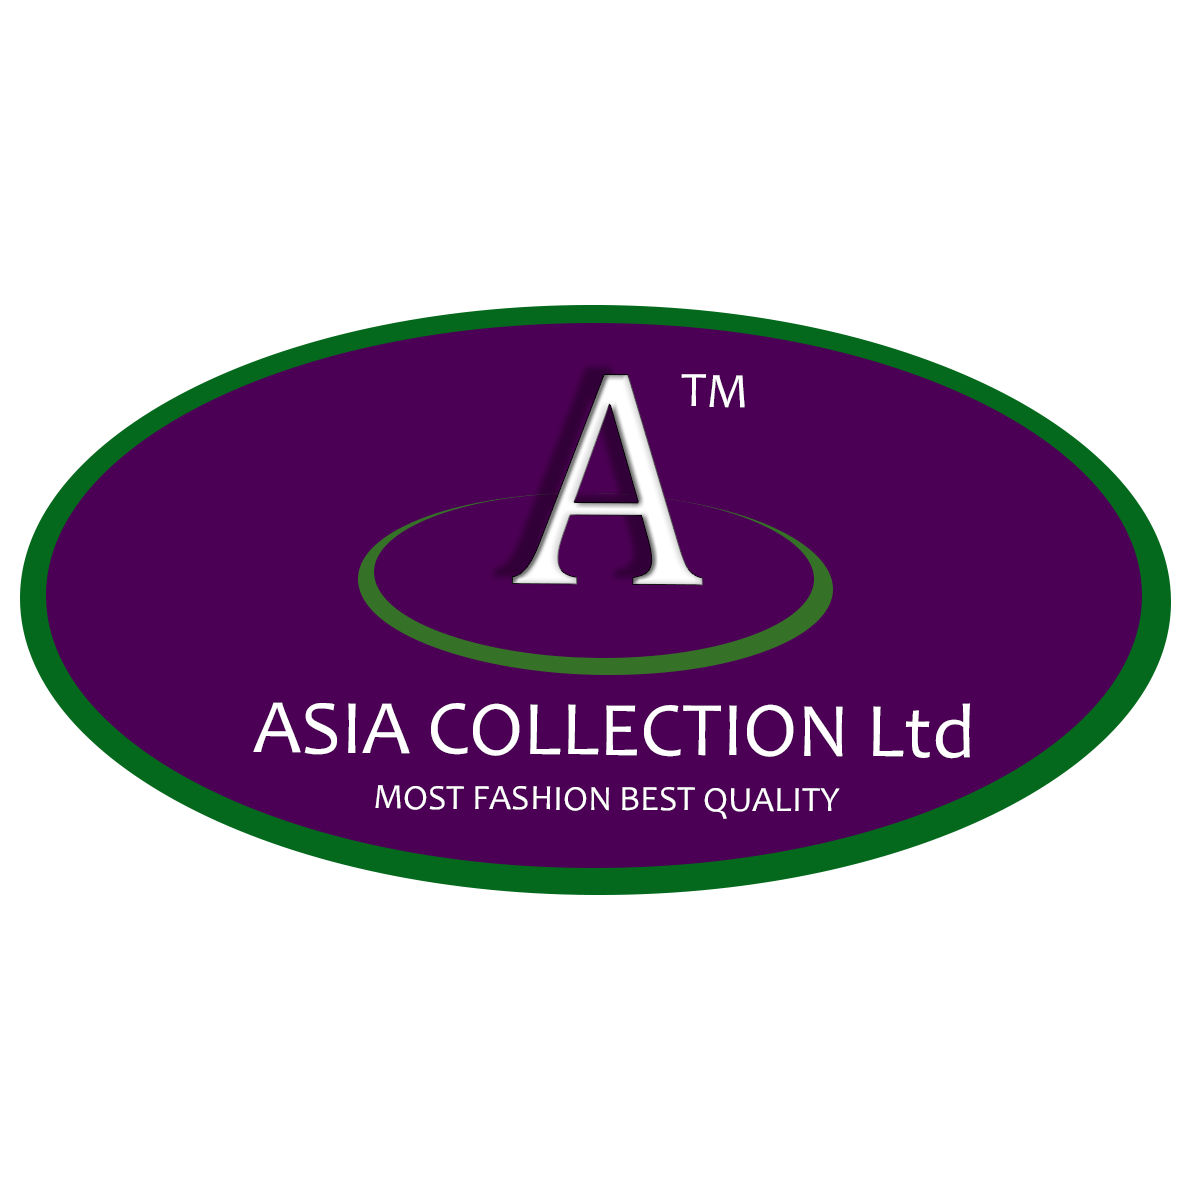 Asia Collection Ltd.